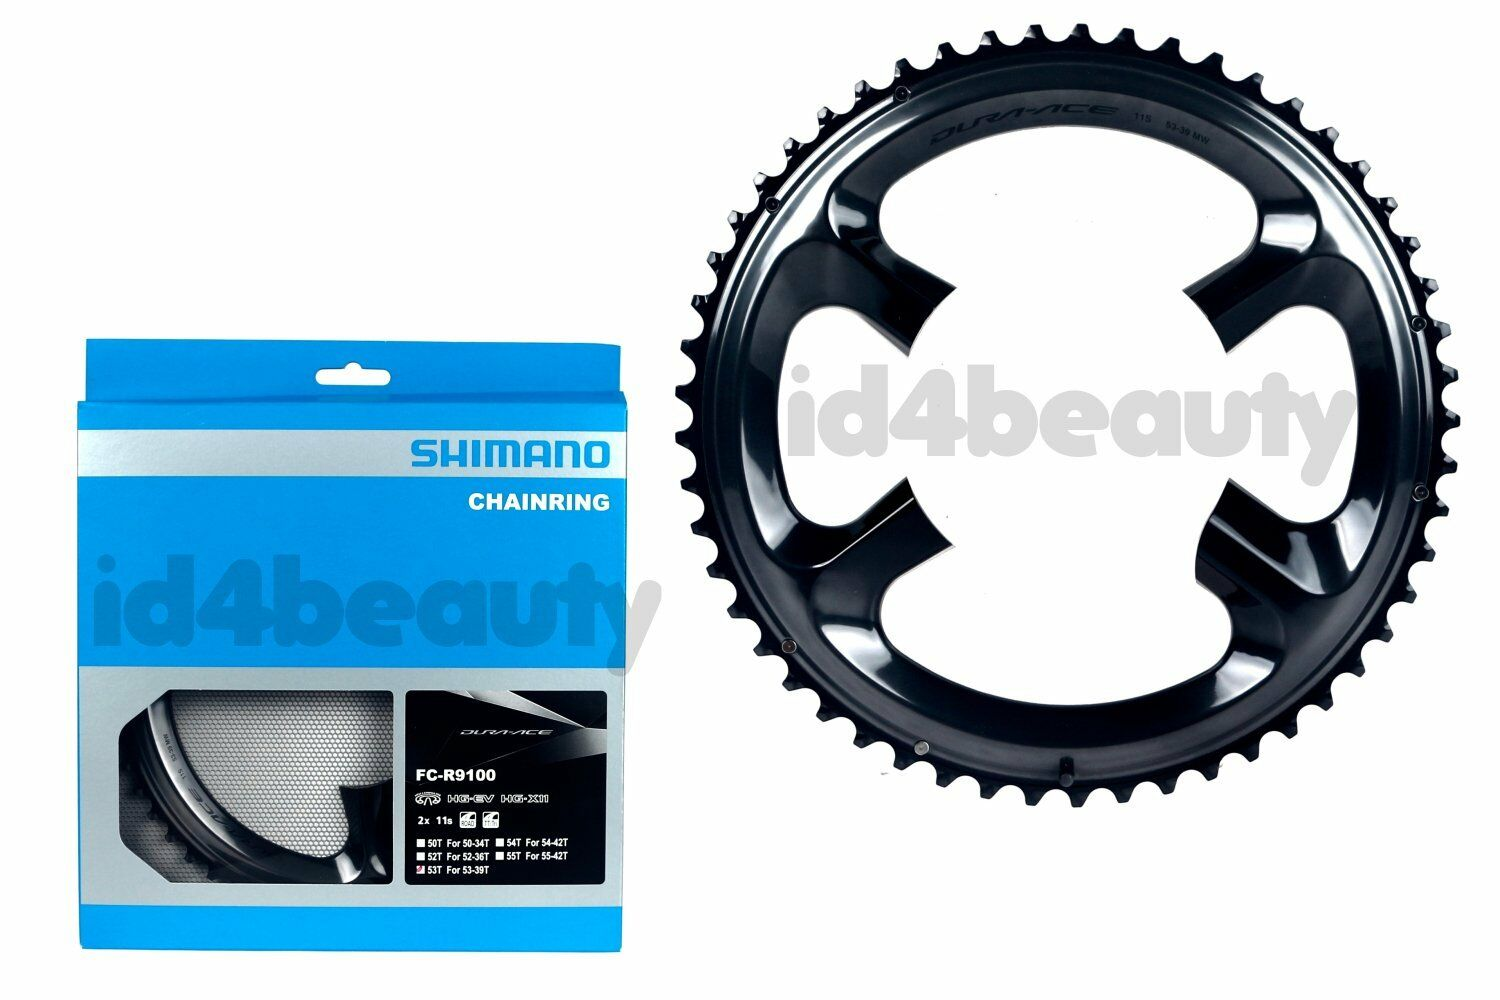 Shimano Dura Ace FC-R9100 Outer Chainring 53T-MW for 53-39T Road Bike NIB 1PC